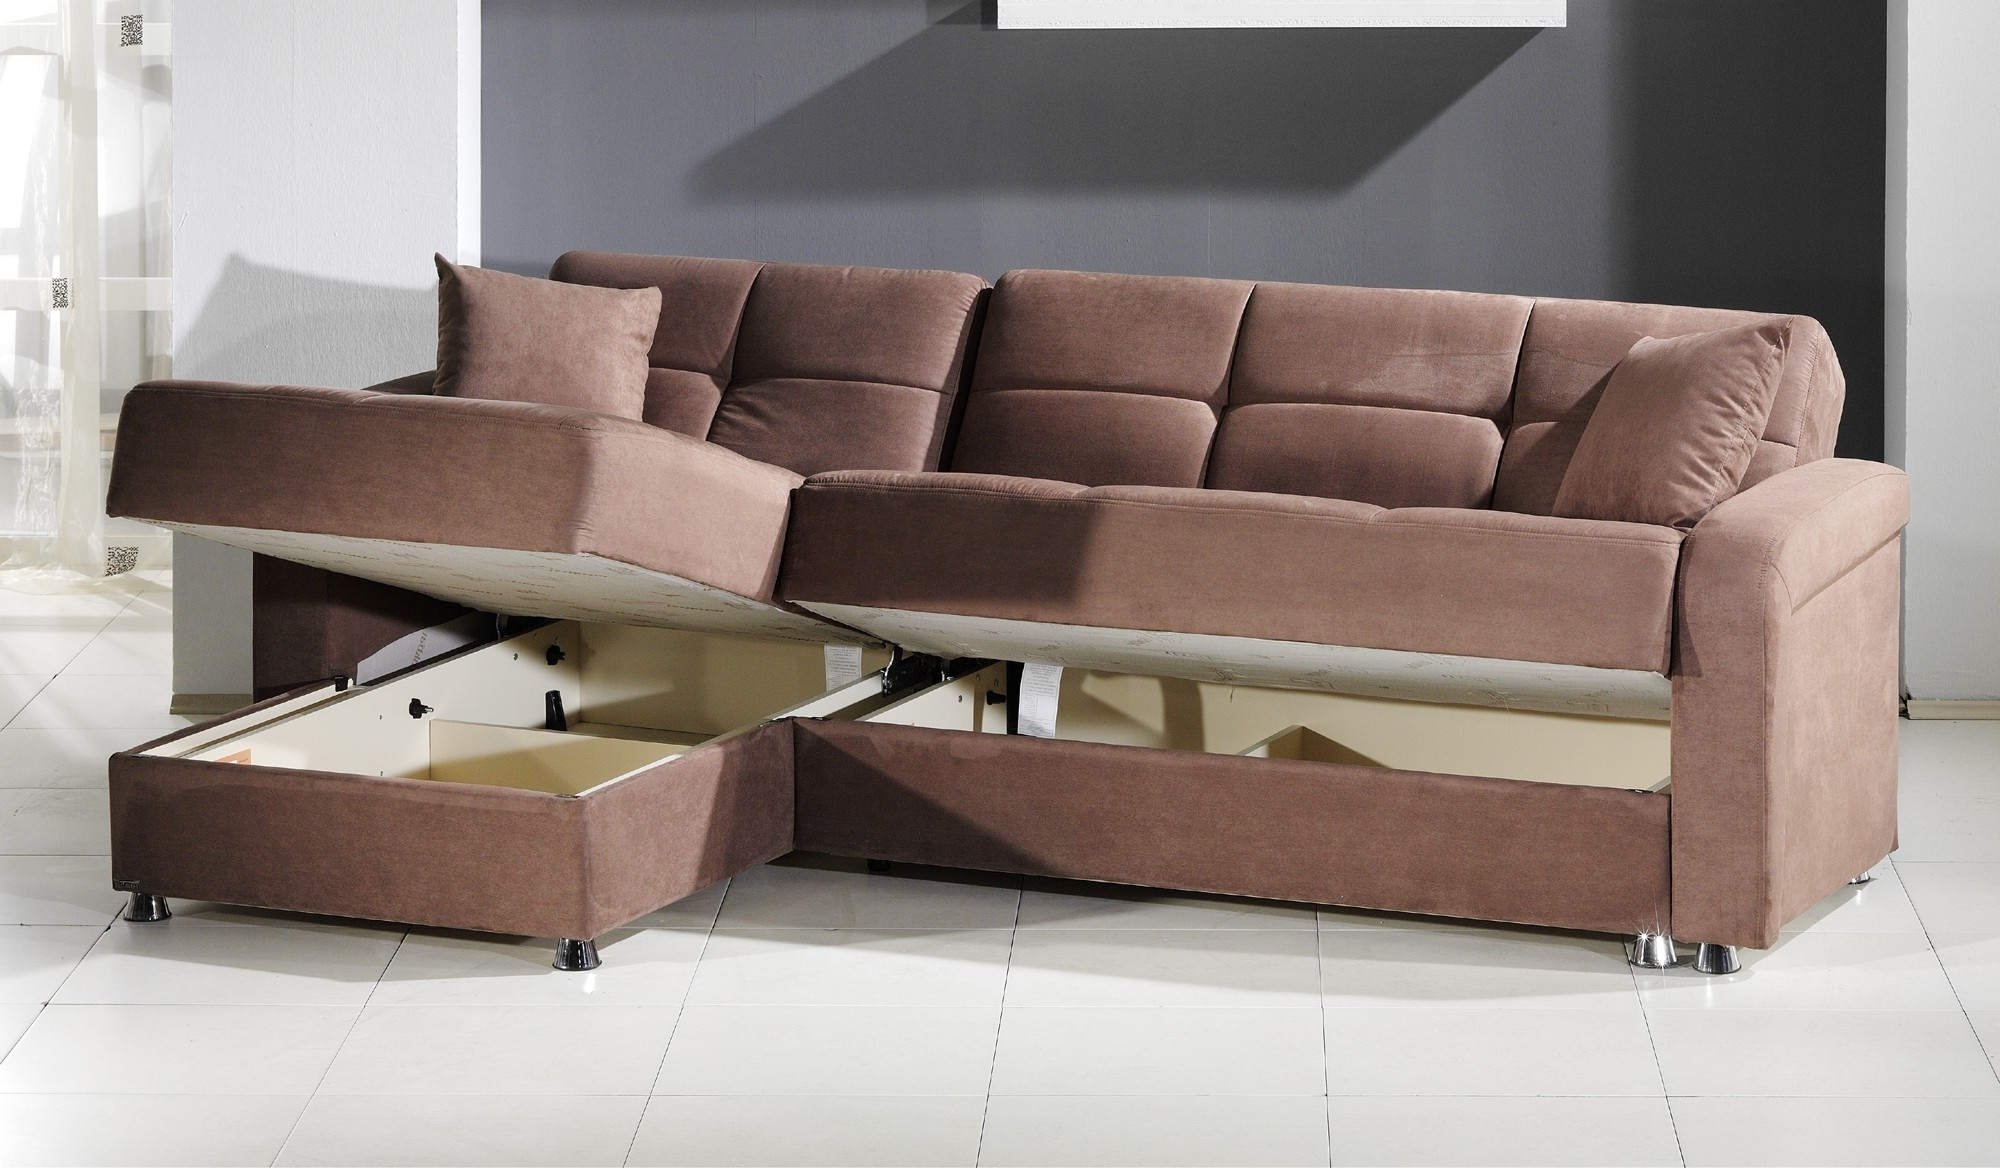 Convertible Sectional Sofas In Widely Used Vision Convertible Sectional Sofa In Rainbow Truffleistikbal (View 2 of 15)